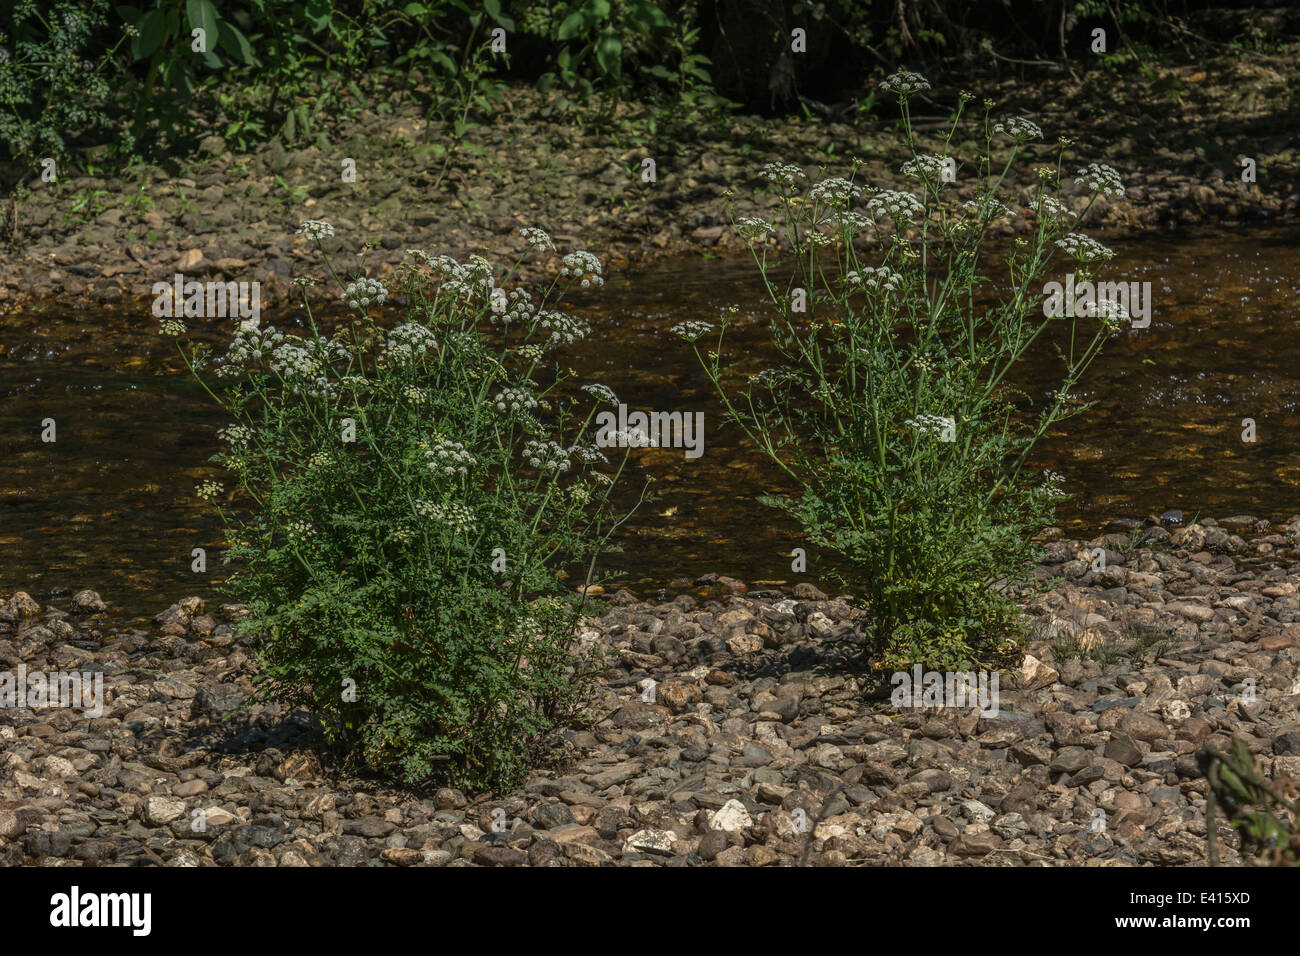 Two specimens of poisonous Water Dropwort growing in the shingle of a river bed. Hygrophilous plants concept. Stock Photo